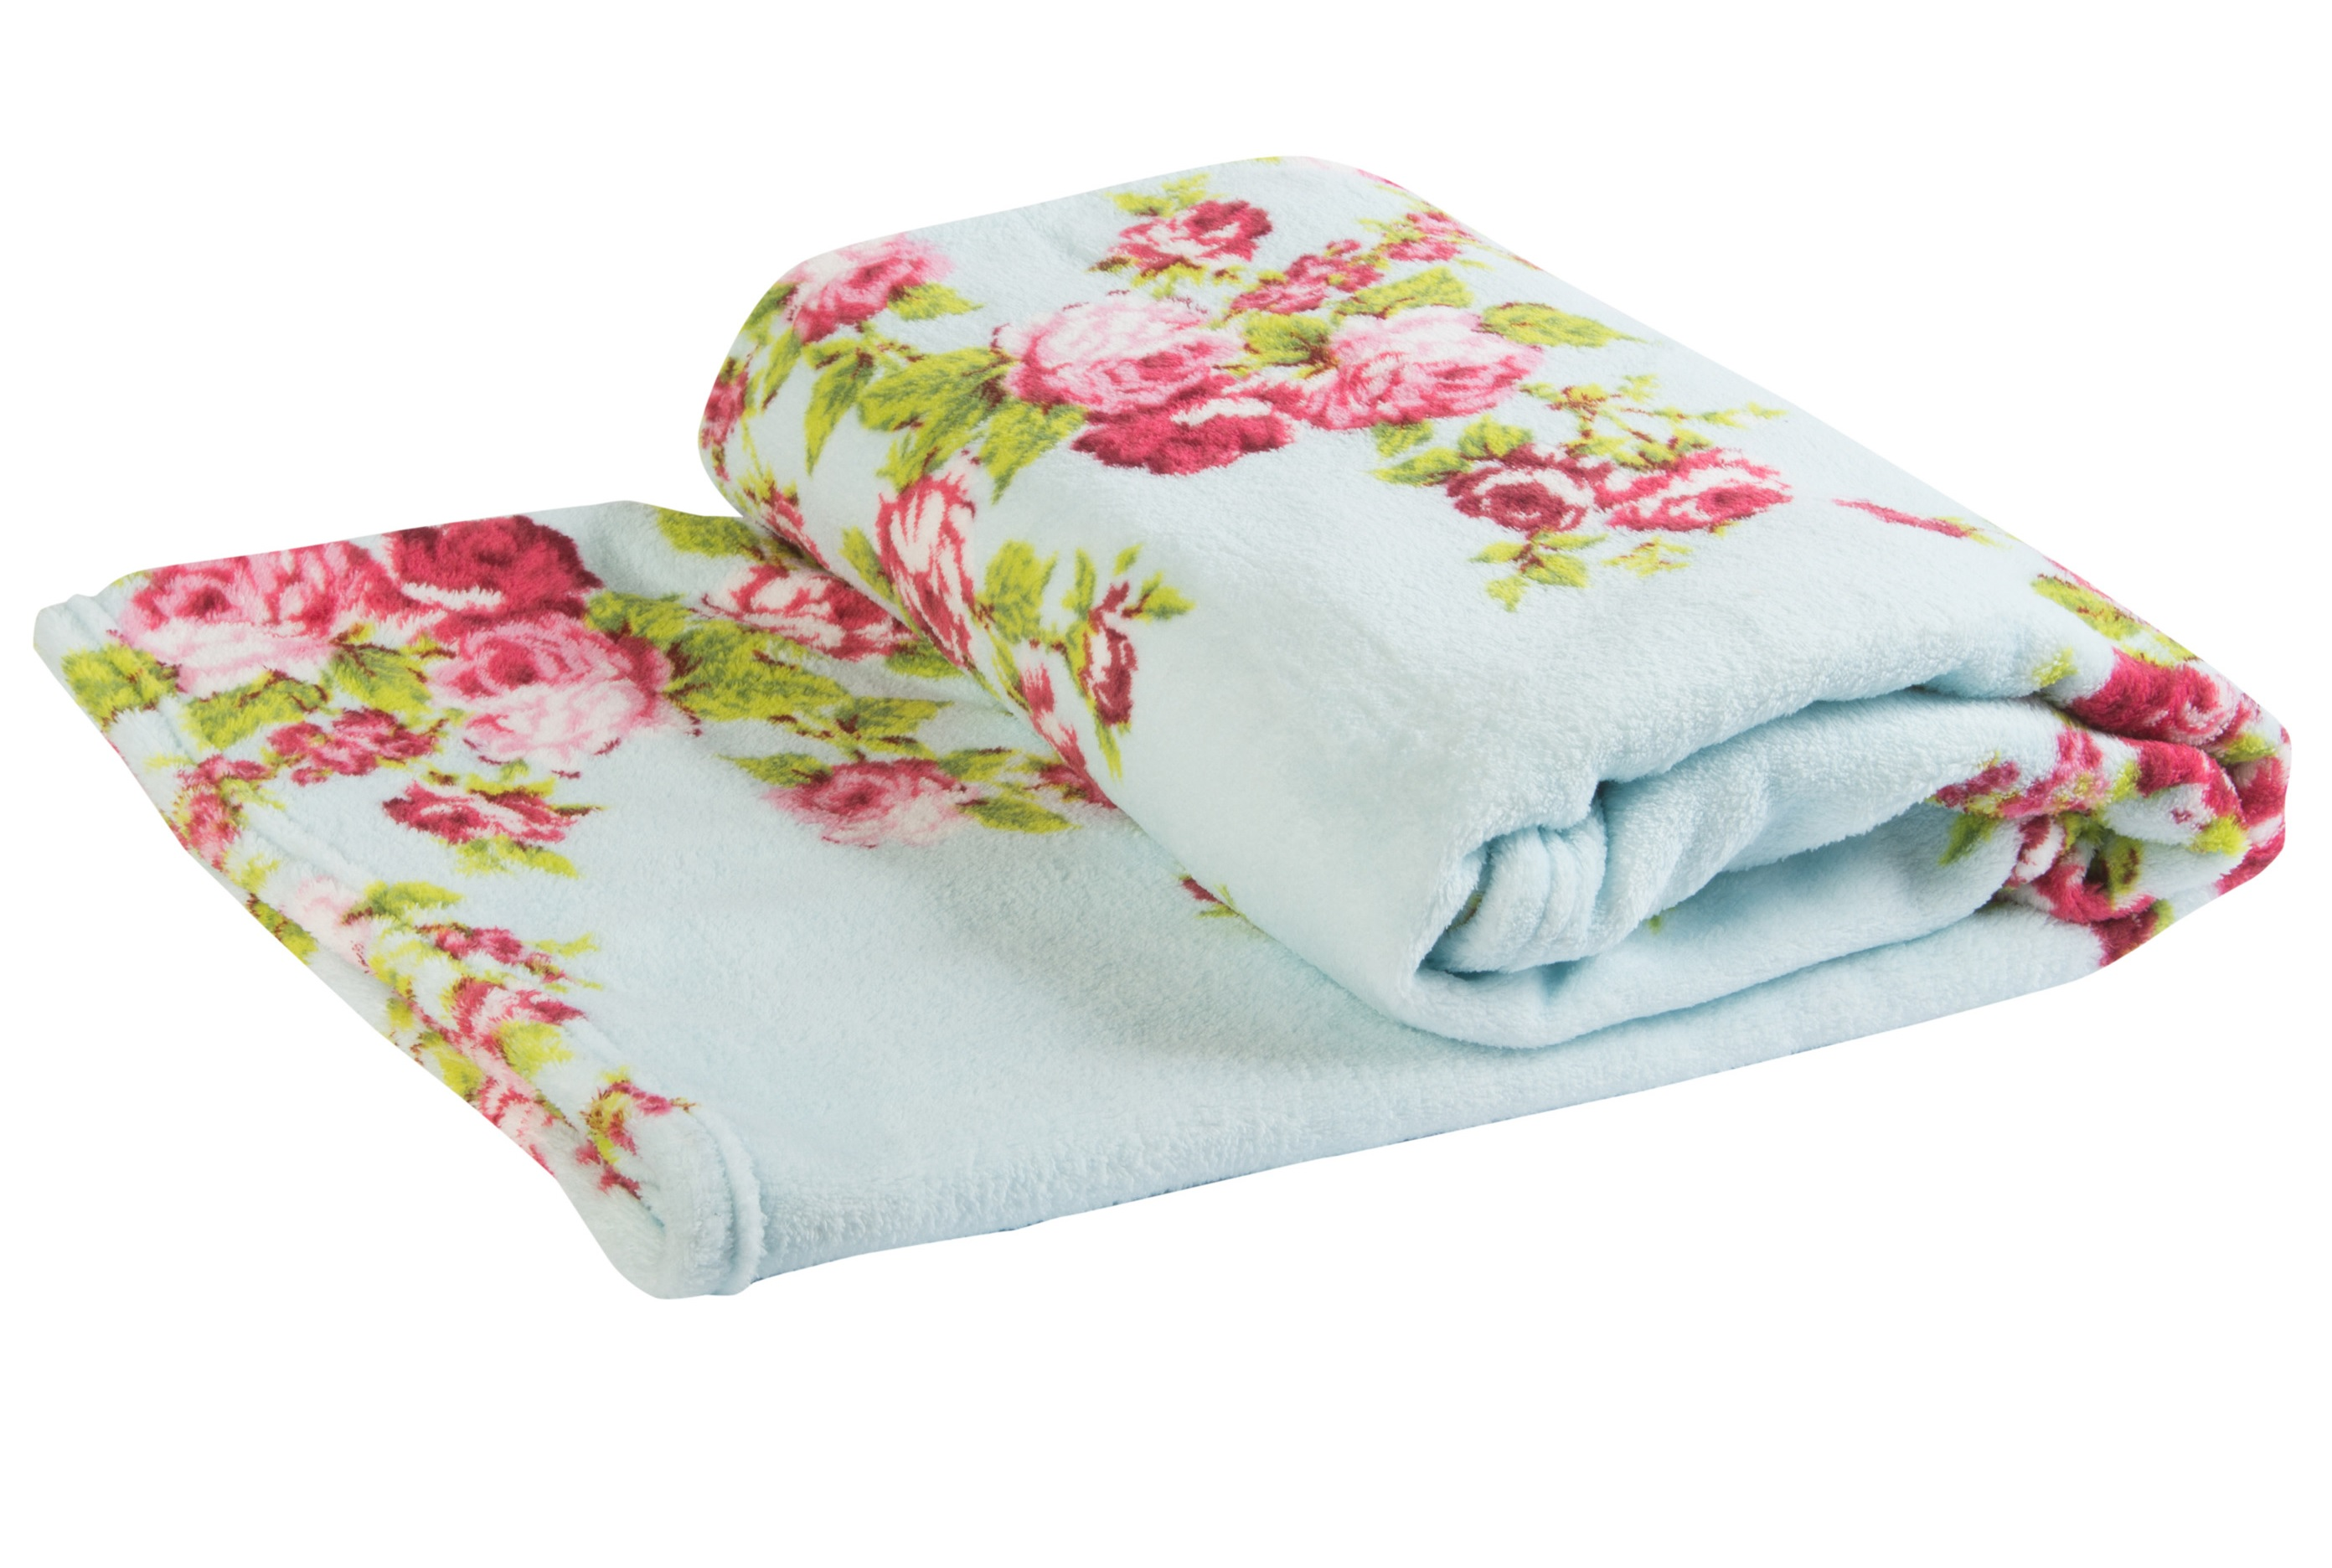 Coral Fleece Blanket Throw Flower or Butterfly Luxury Sofa Bed